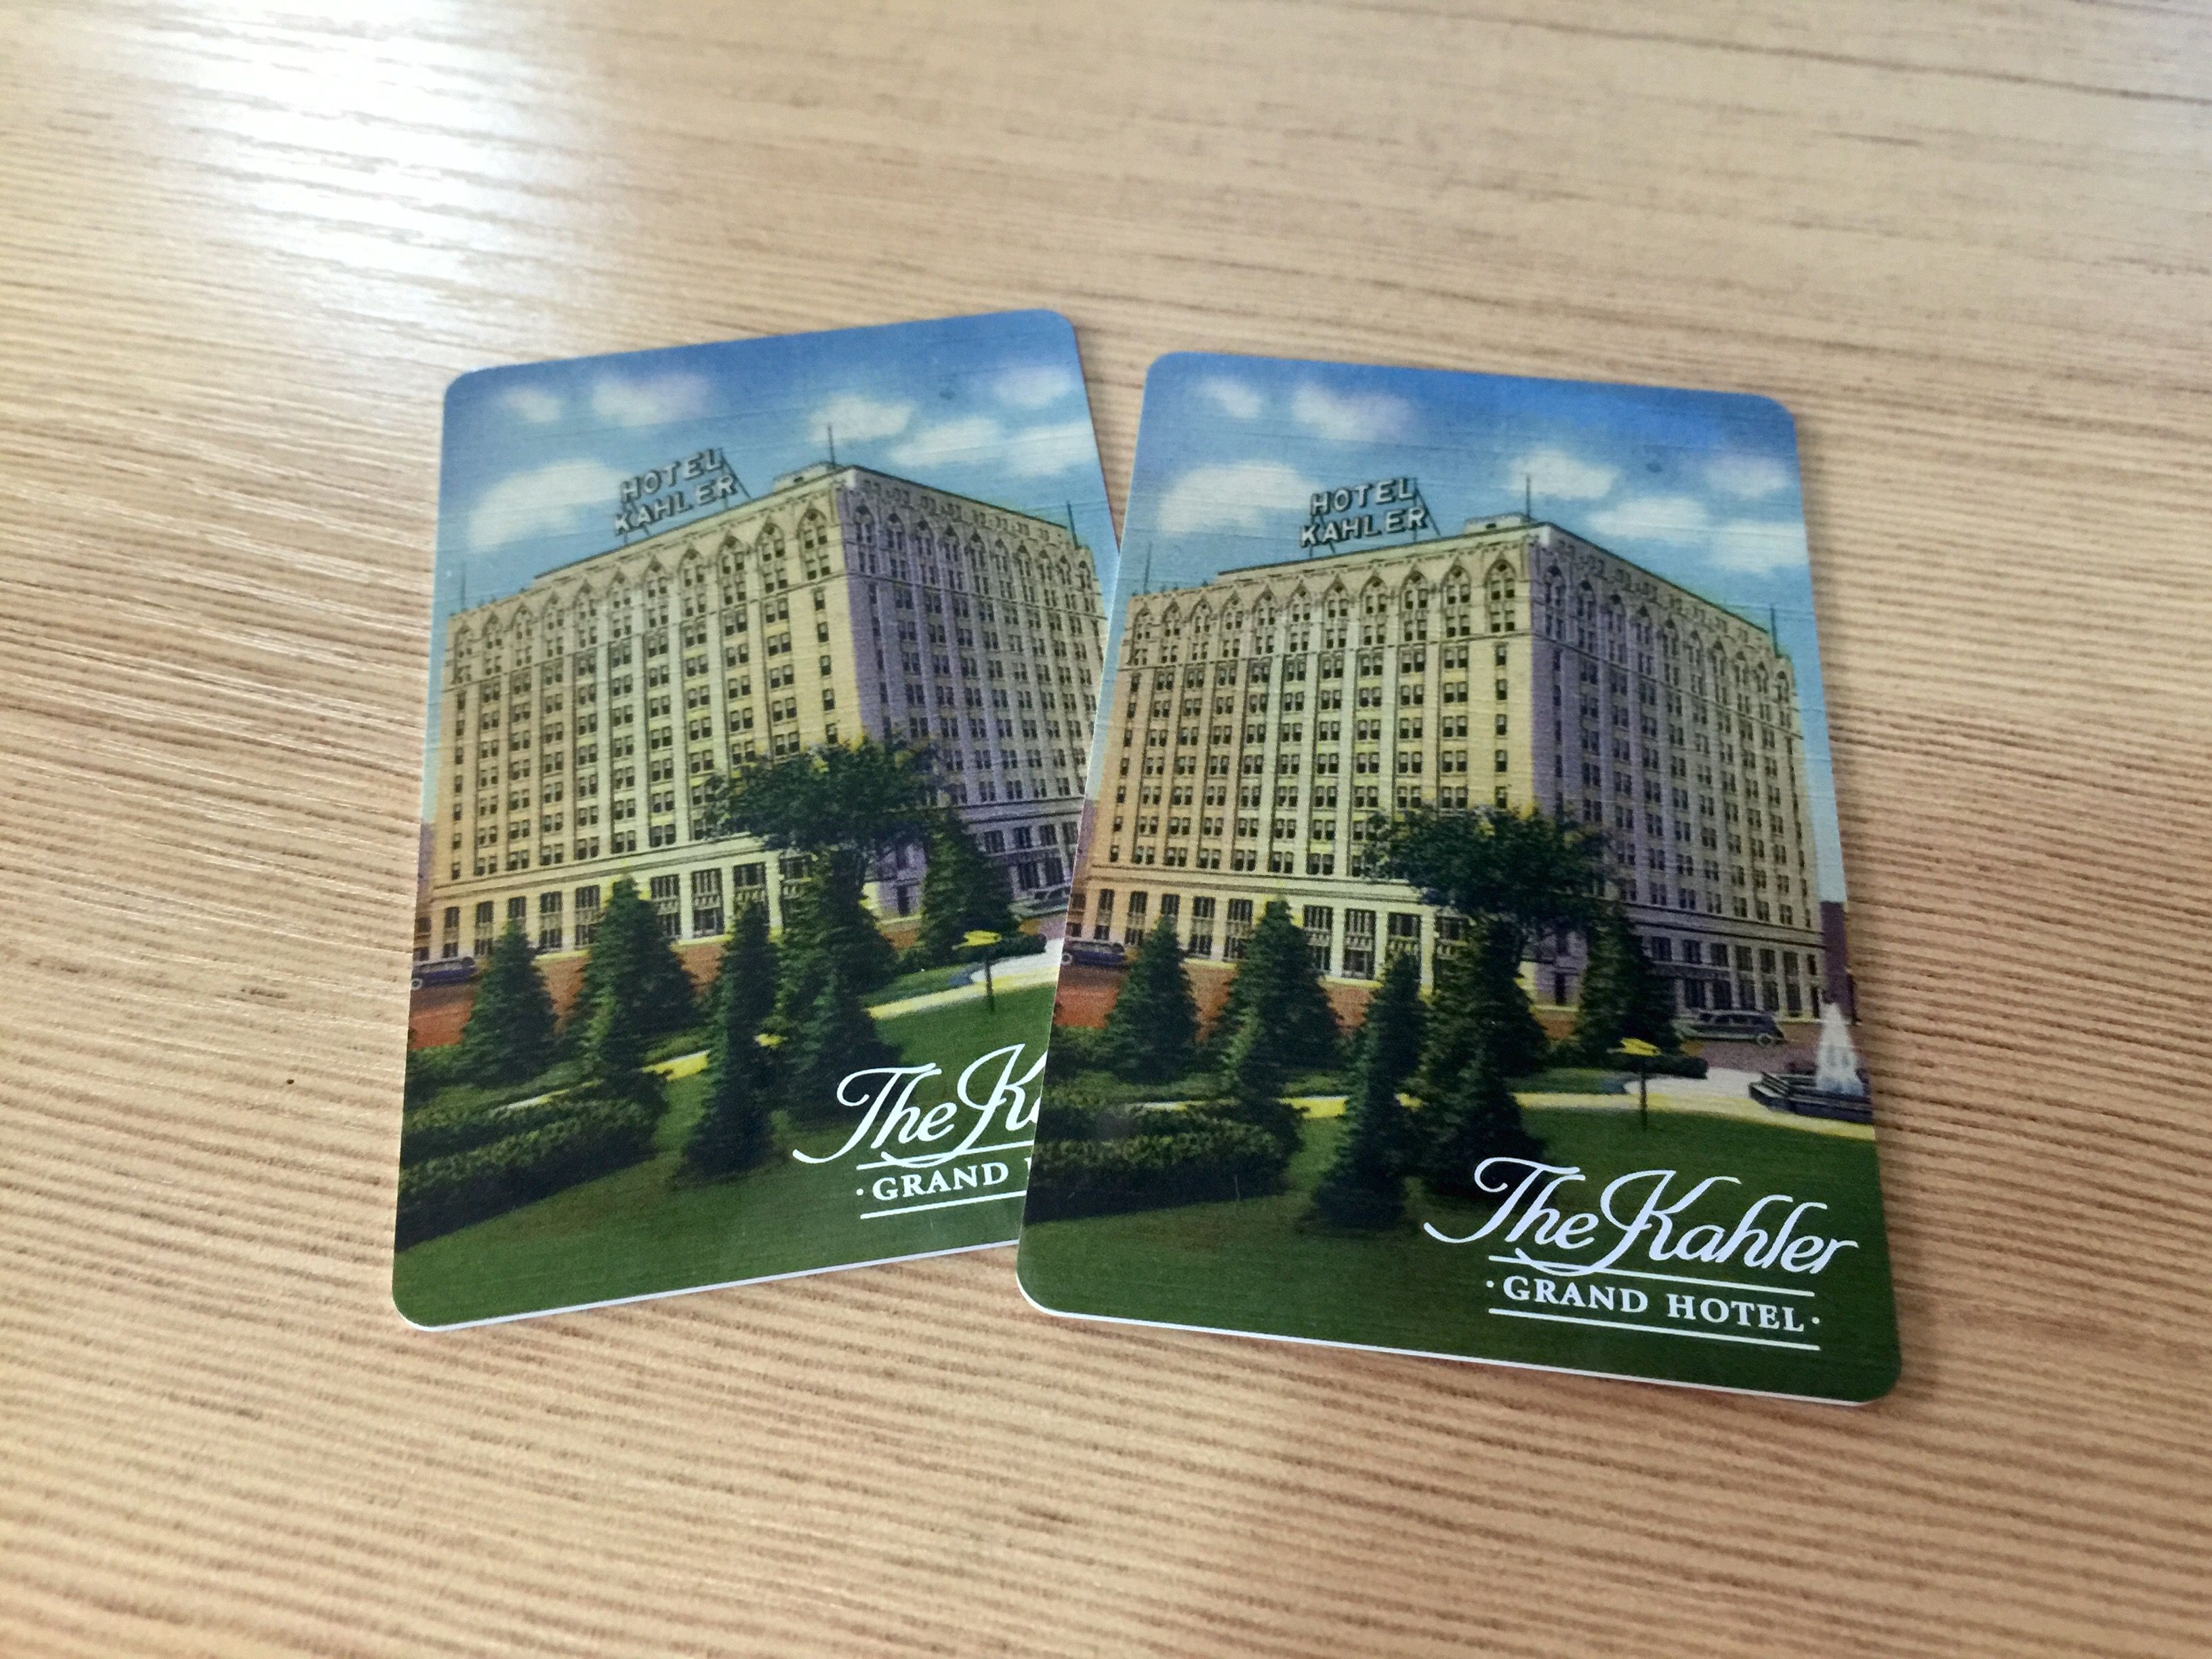 Plastic Key Card For Our Uk Friend Hotel Key Cards Cards Card Making